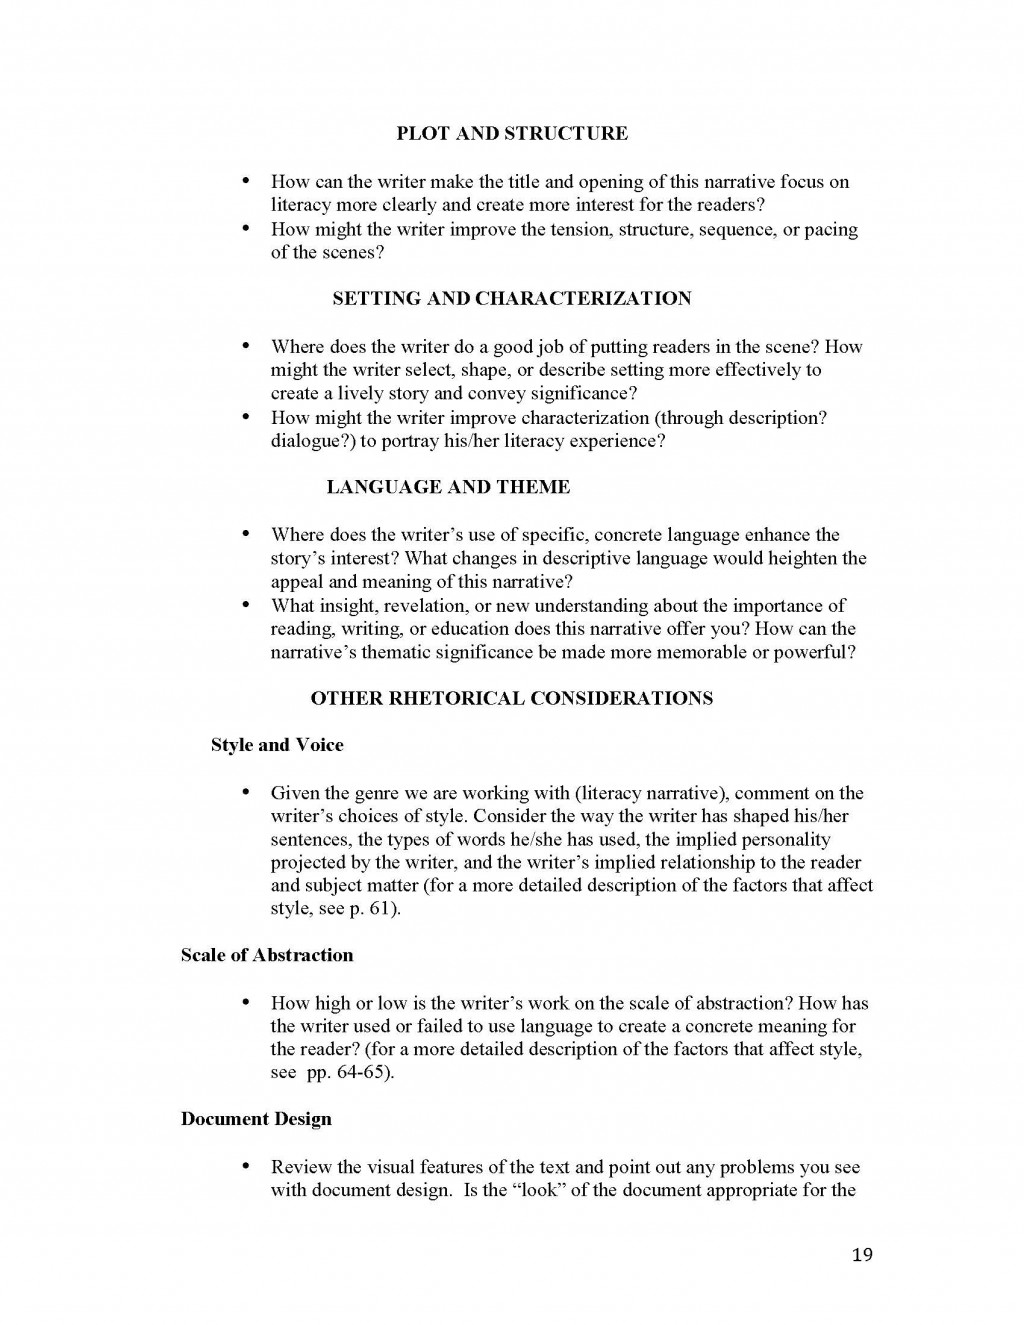 011 Personal Narrative Essay Topics Example Unit 1 Literacy Instructor Copy Page 19 Excellent For Middle School High Students Large